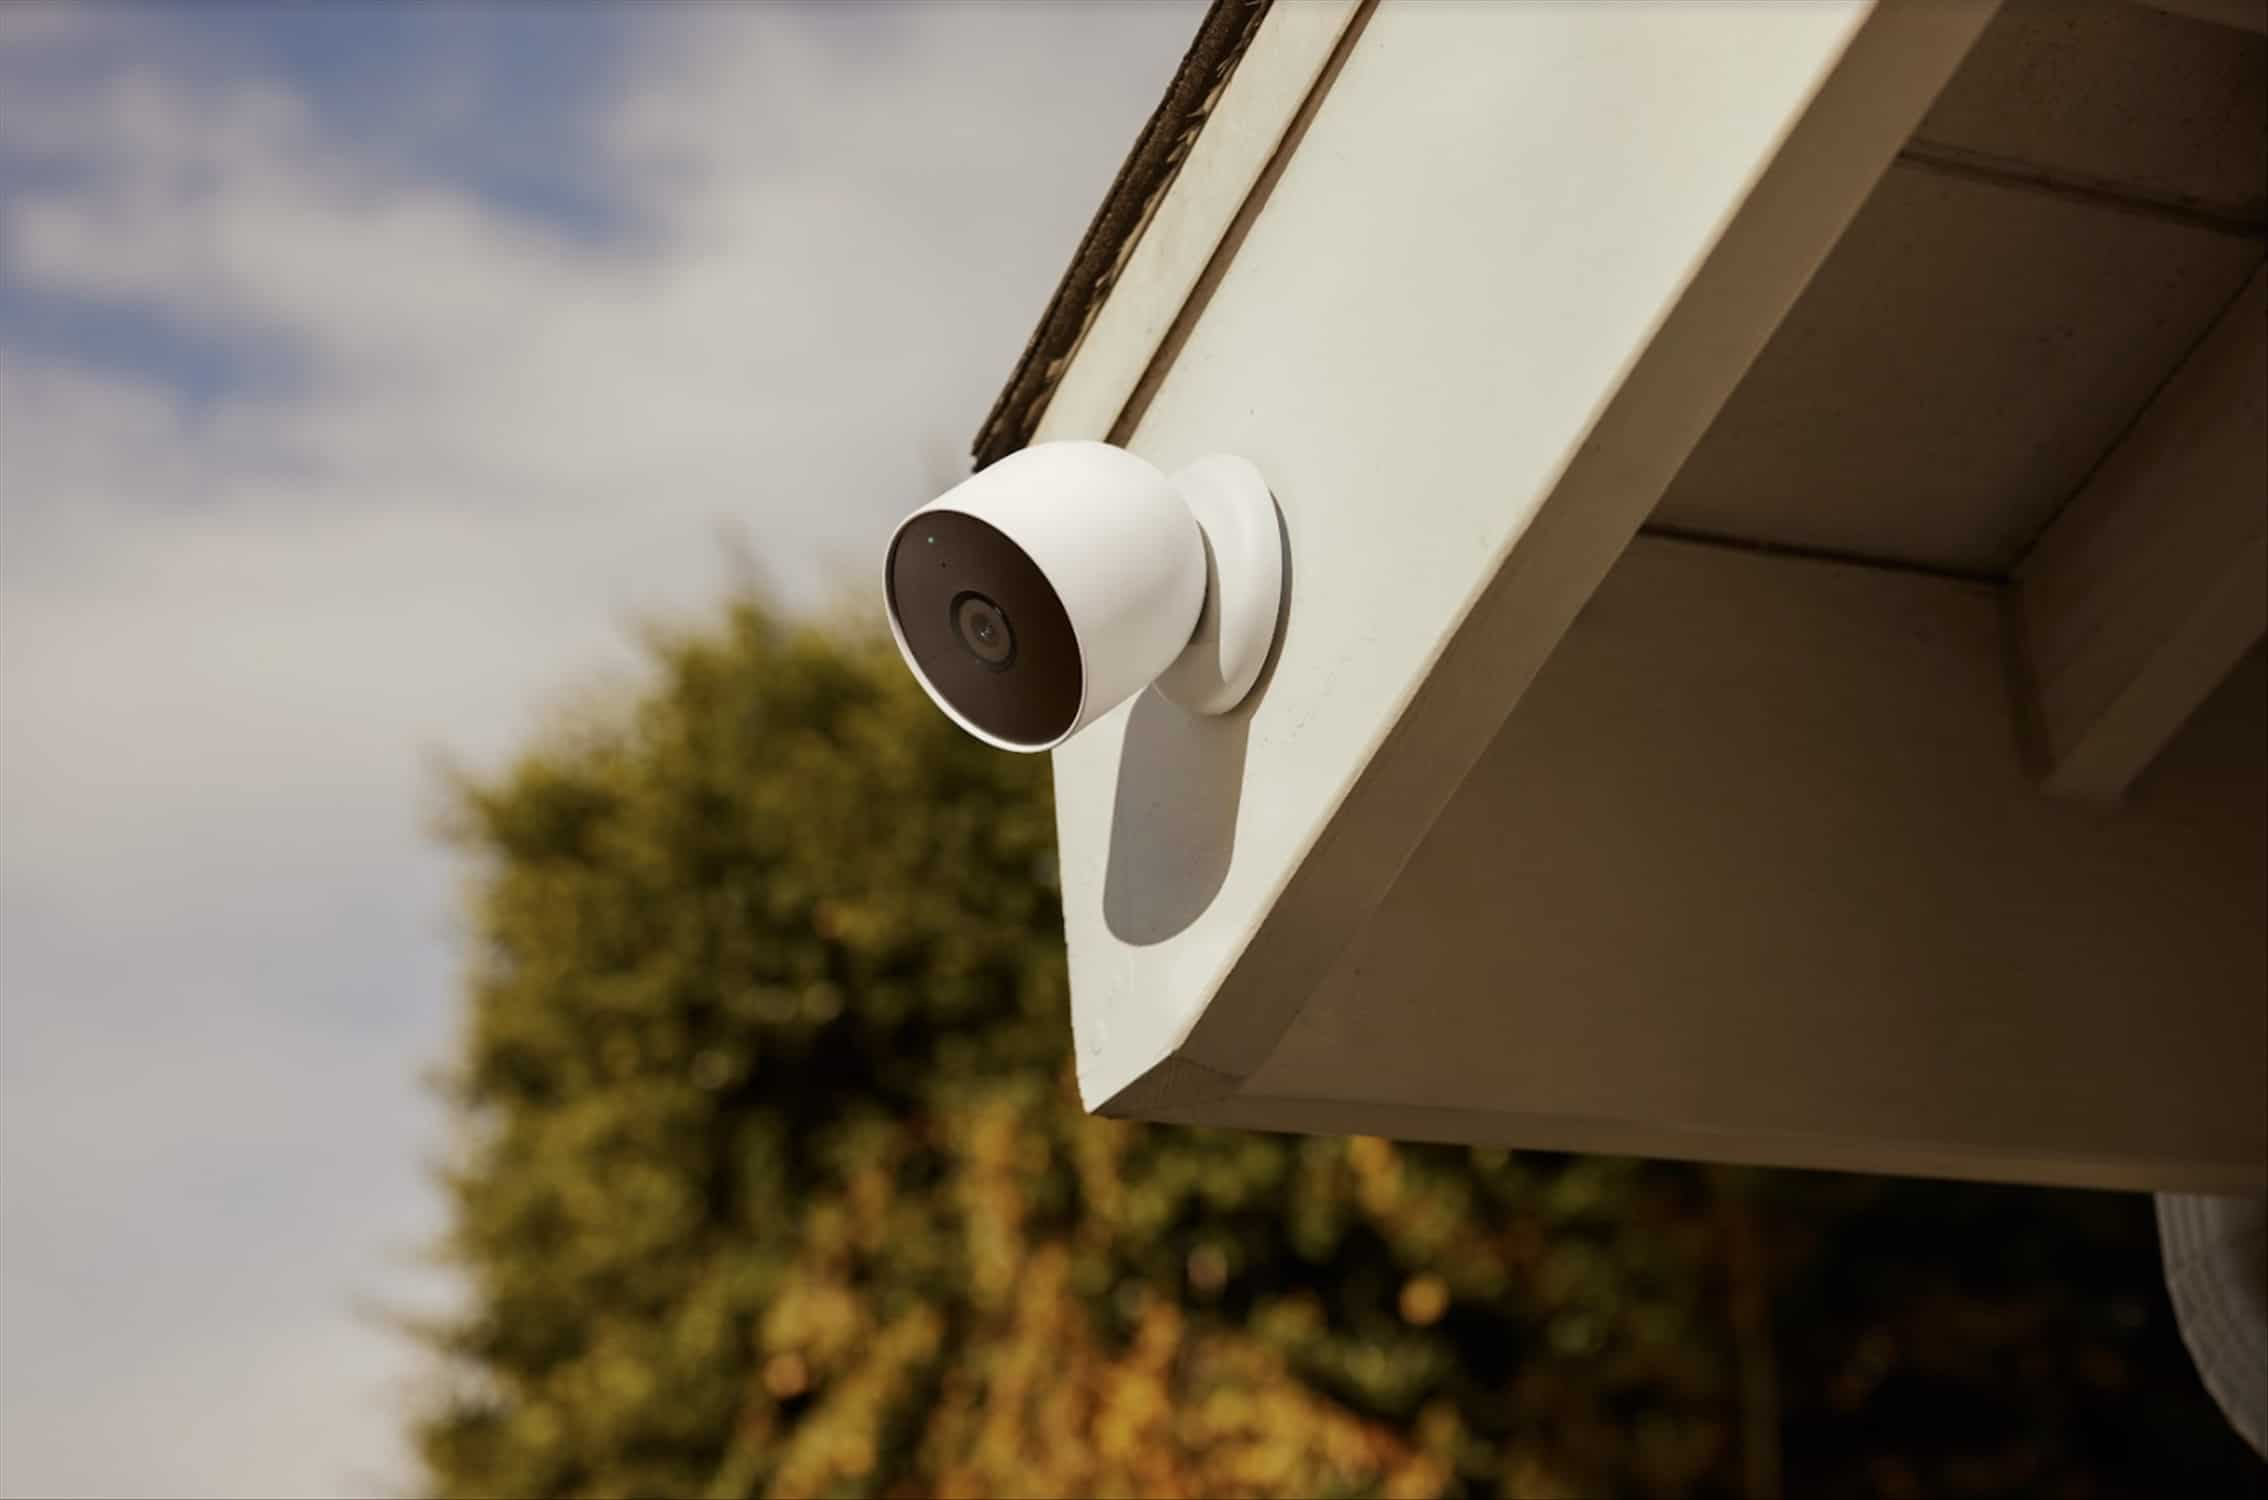 A smart, home security camera that can recognise faces – Google Nest Cam Battery Review